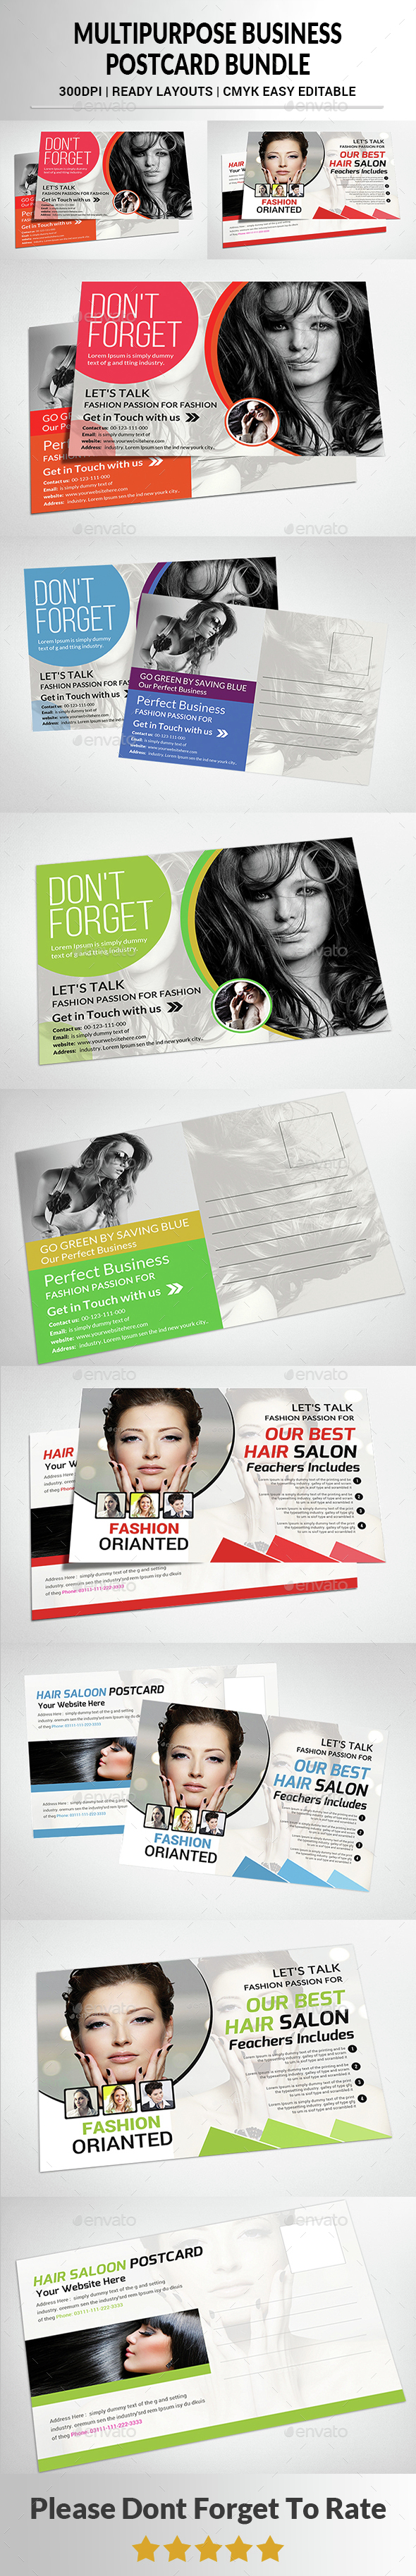 Multipurpose Business Postcard Bundle - Cards & Invites Print Templates